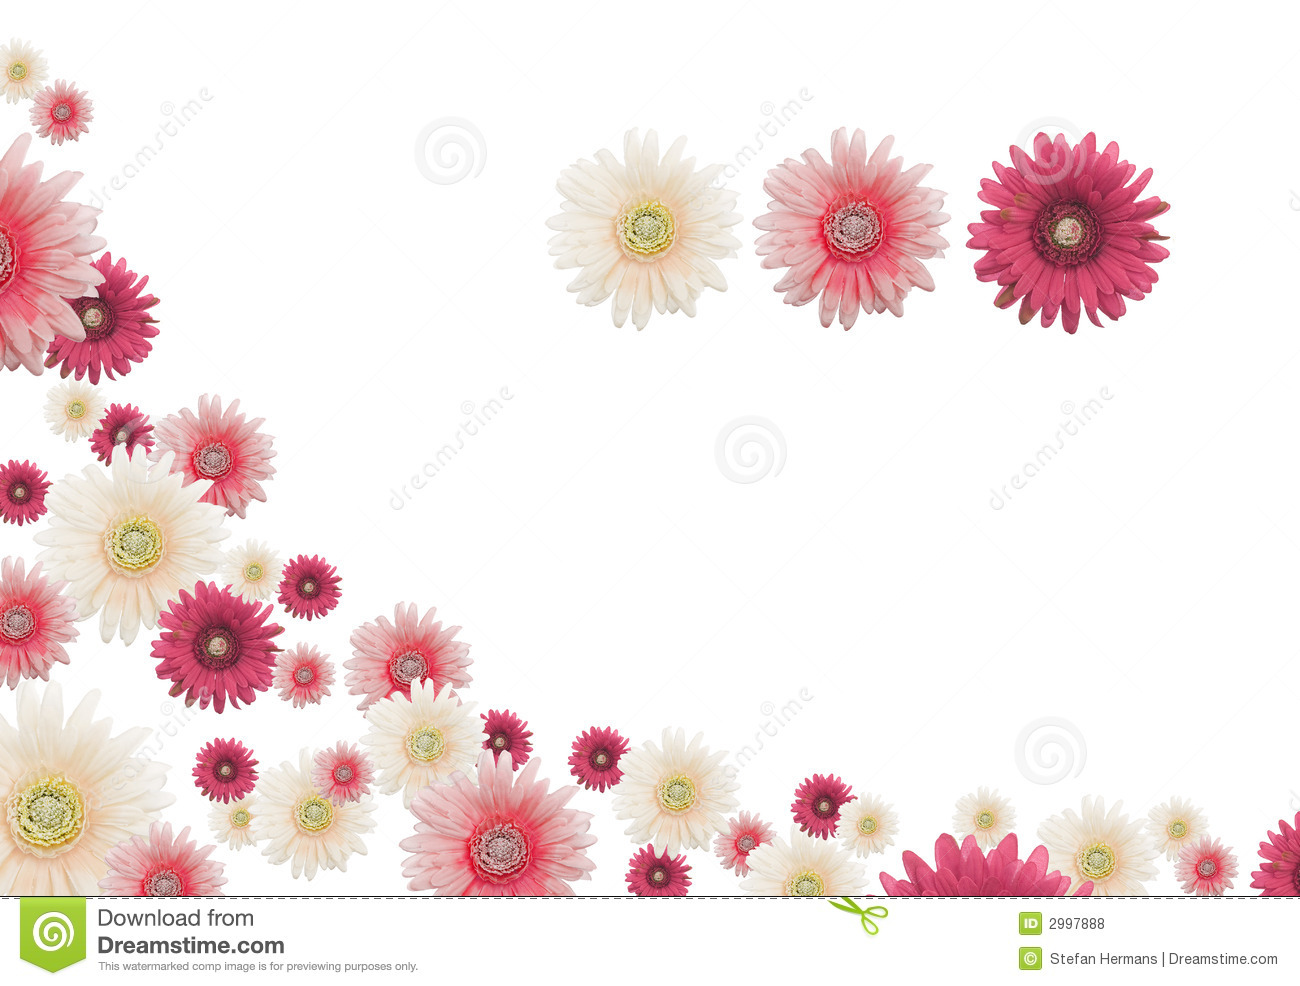 Flower Border Royalty Free Stock Photos - Image: 2997888